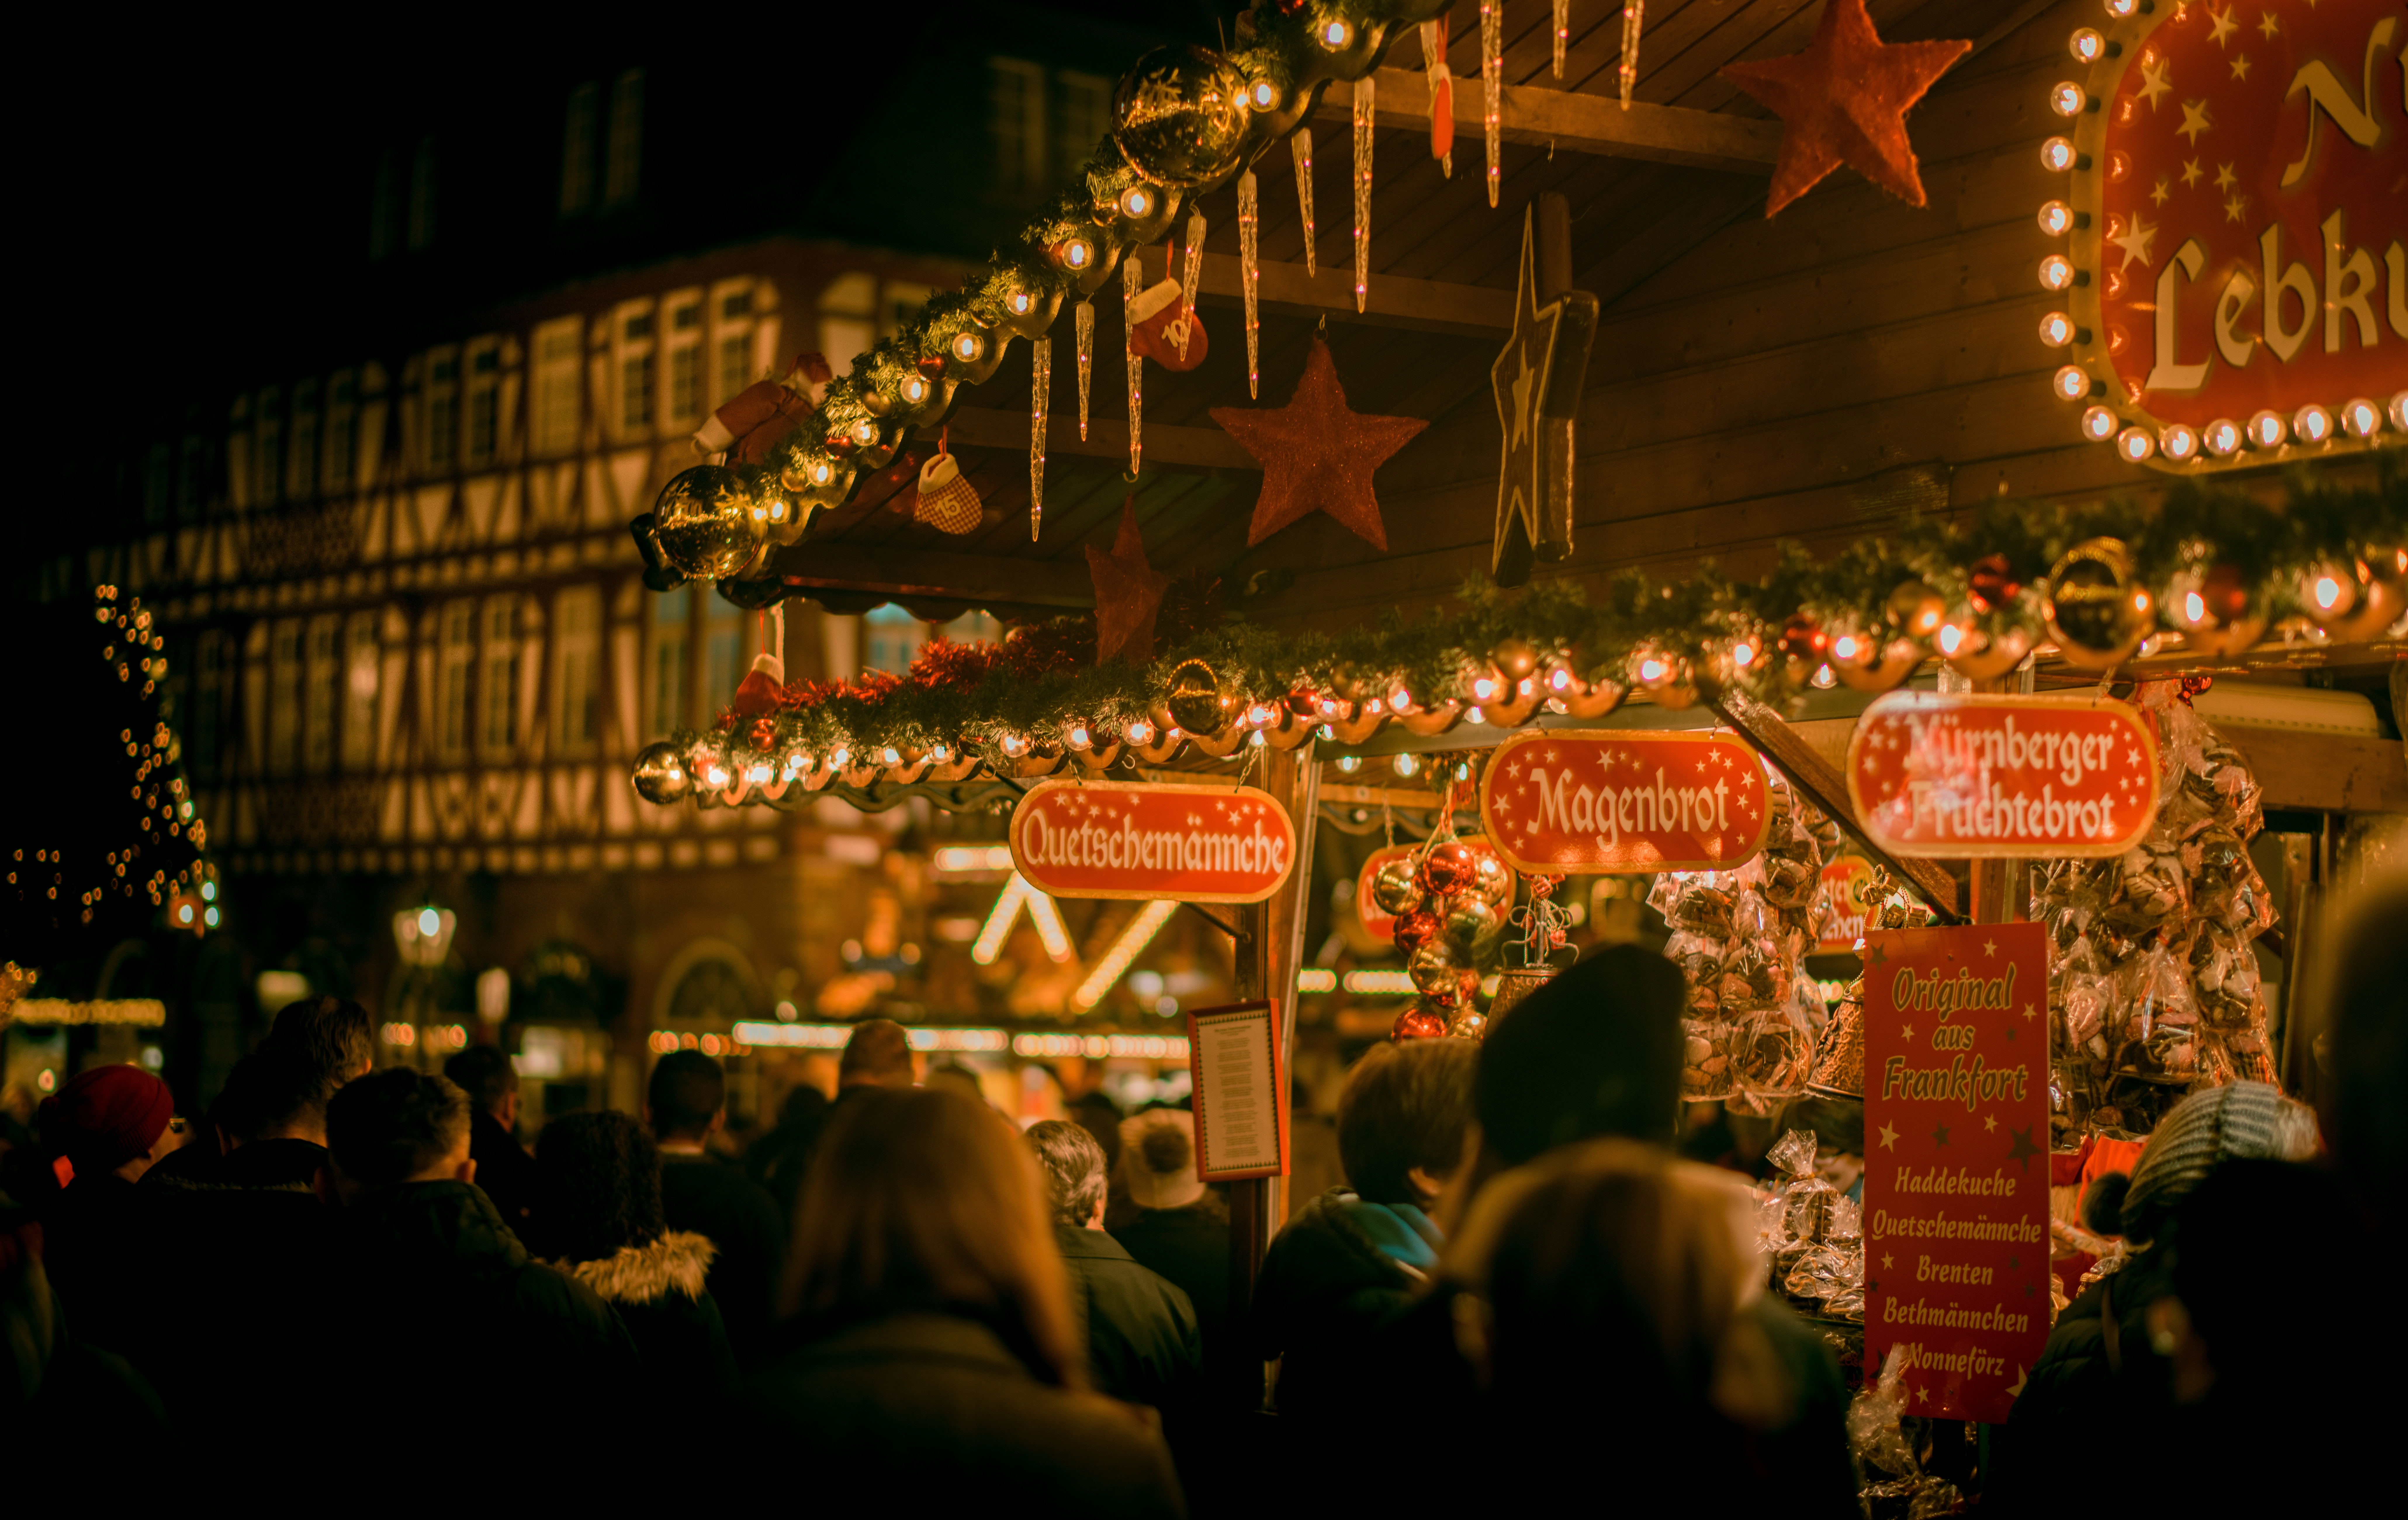 River Cruises are great for Christmas markets.